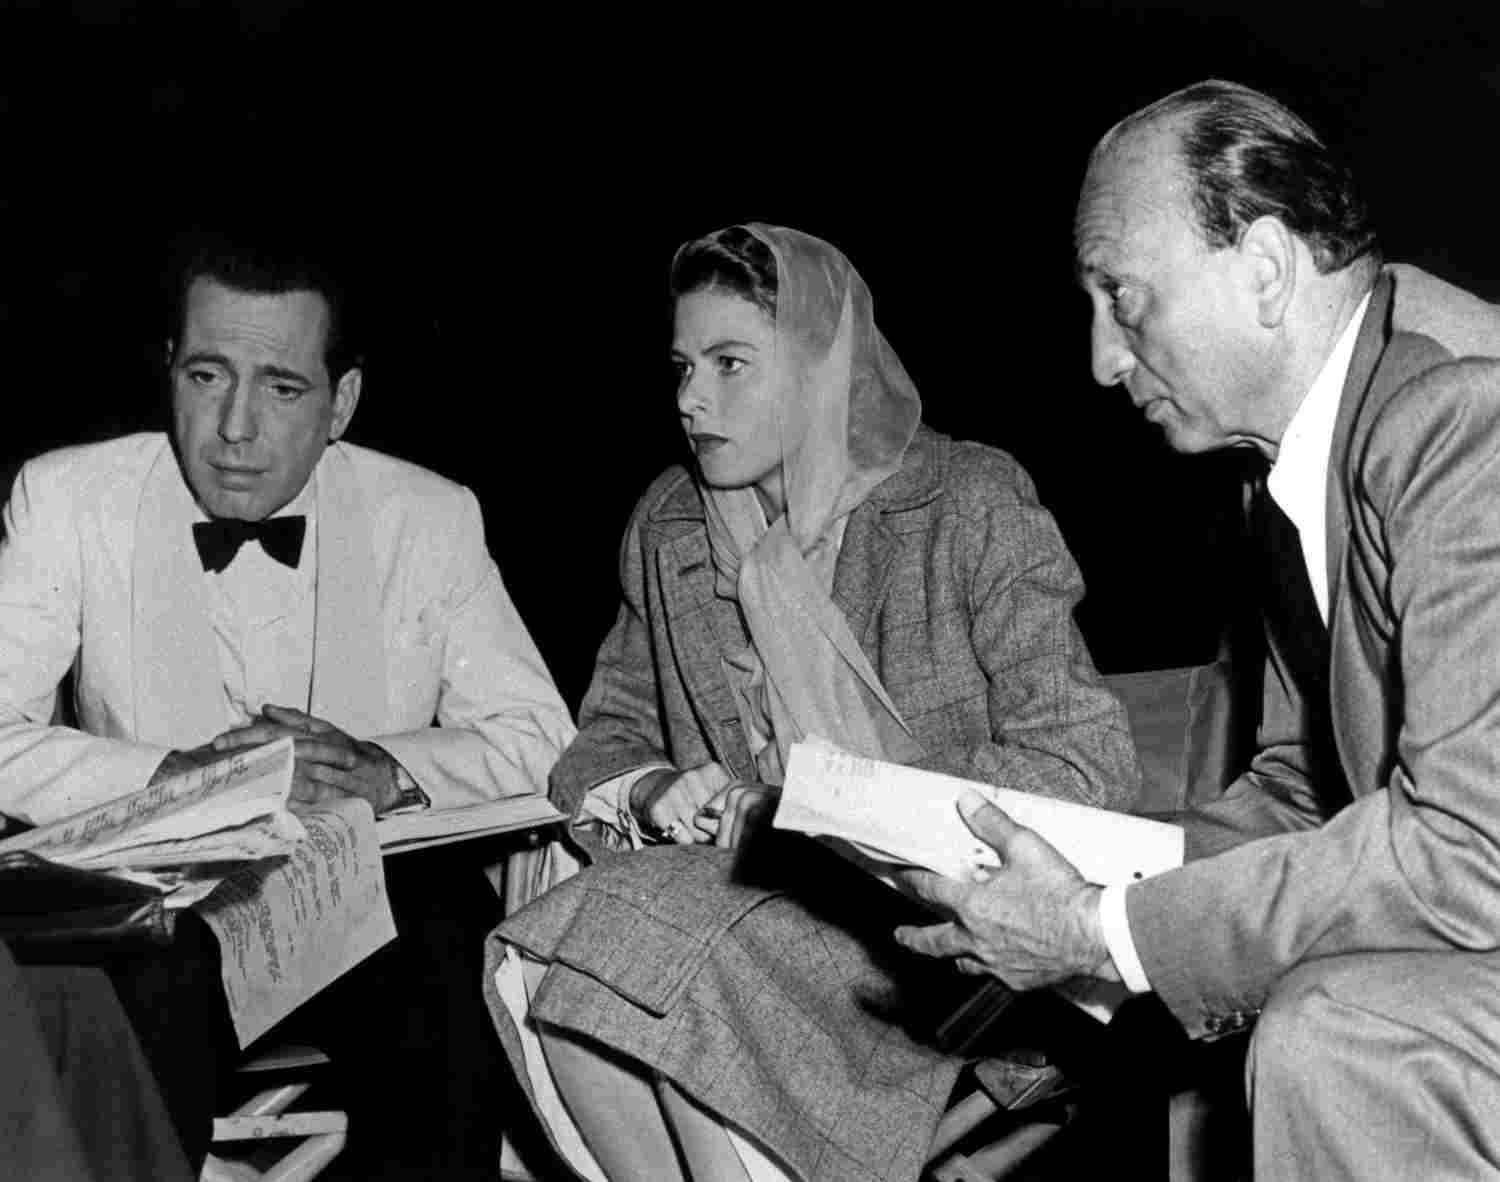 Photo du torunage du film Casablanca figurant Michael Curtiz, Humphrey Bogart et Ingrid Bergman Jewpop